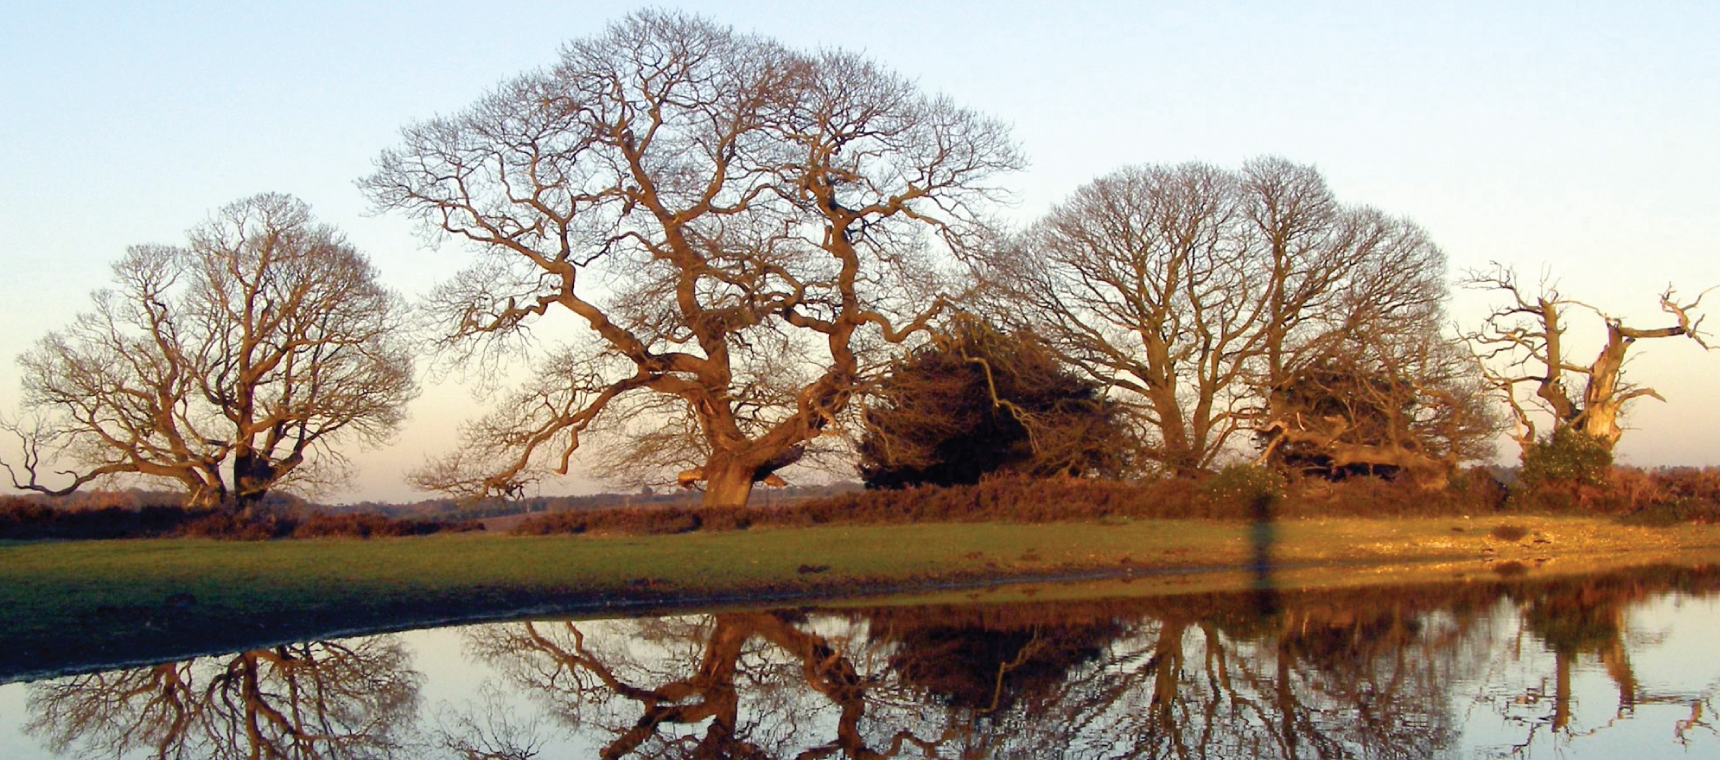 Winter oak reflections 02 https://www.flickr.com/photos/treehouse1977/378863673 by Jim Champion. Licensed for reuse under this Creative Commons Licence https://creativecommons.org/licenses/by-sa/2.0/